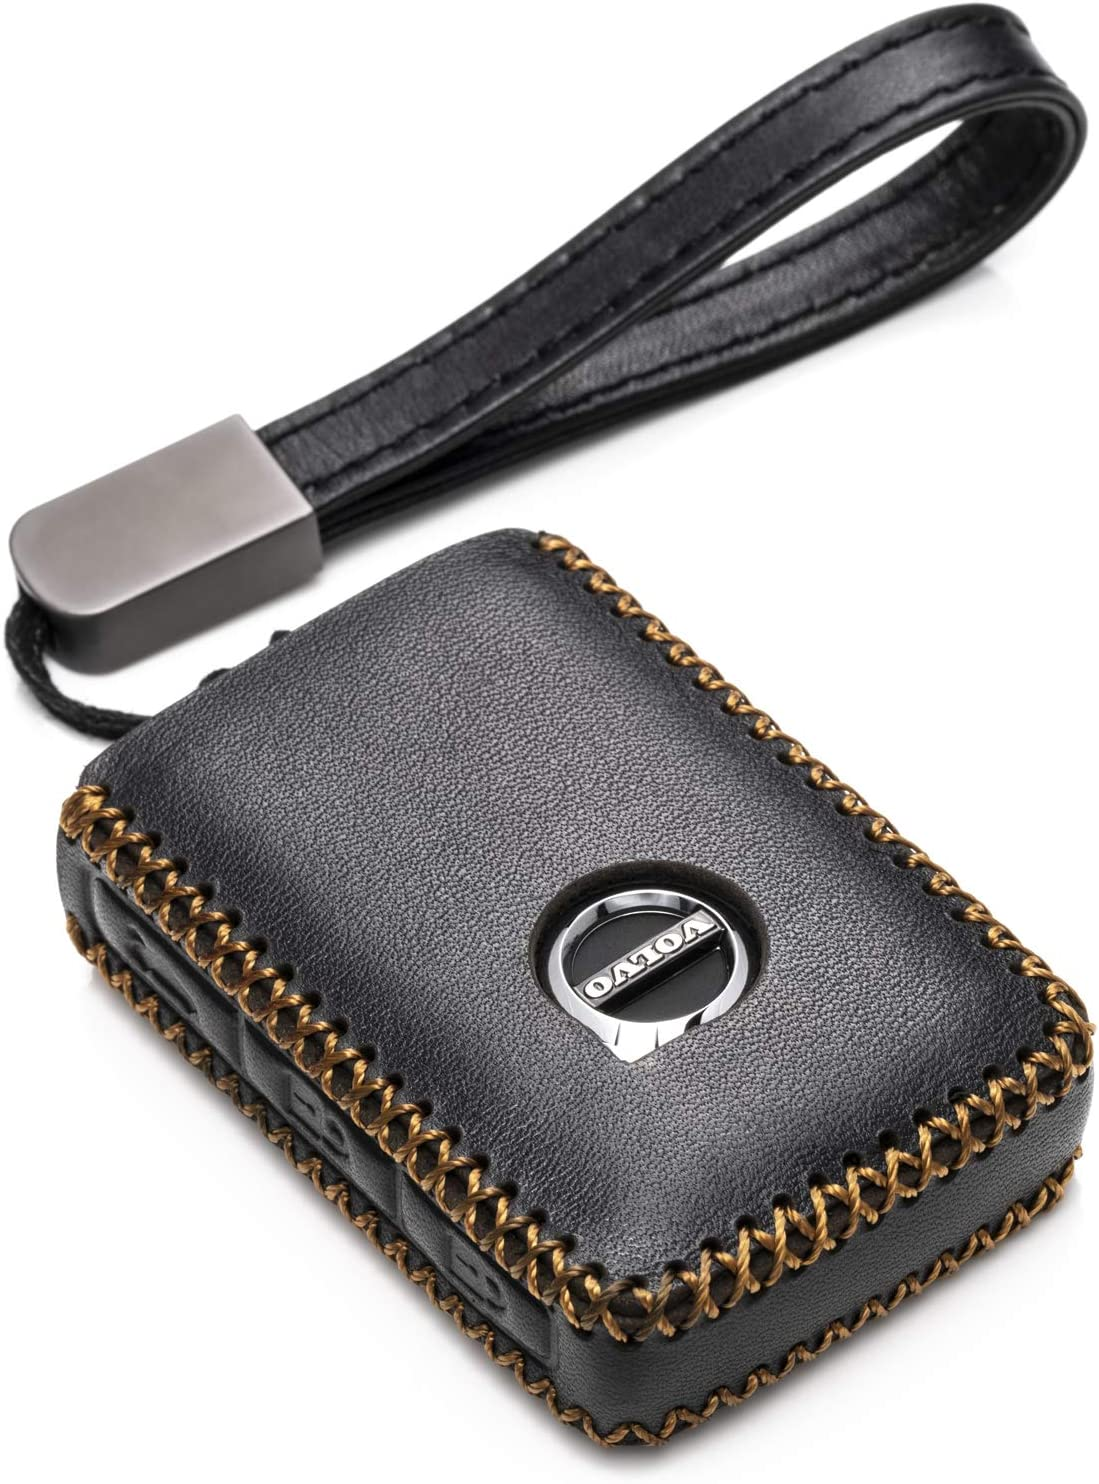 Vitodeco Genuine Leather Smart Key Fob Case Cover Protector with Leather Key Chain for 2019 Volvo XC60 4-Button, Black//Red 2020 Volvo XC40 V90 XC90 S90